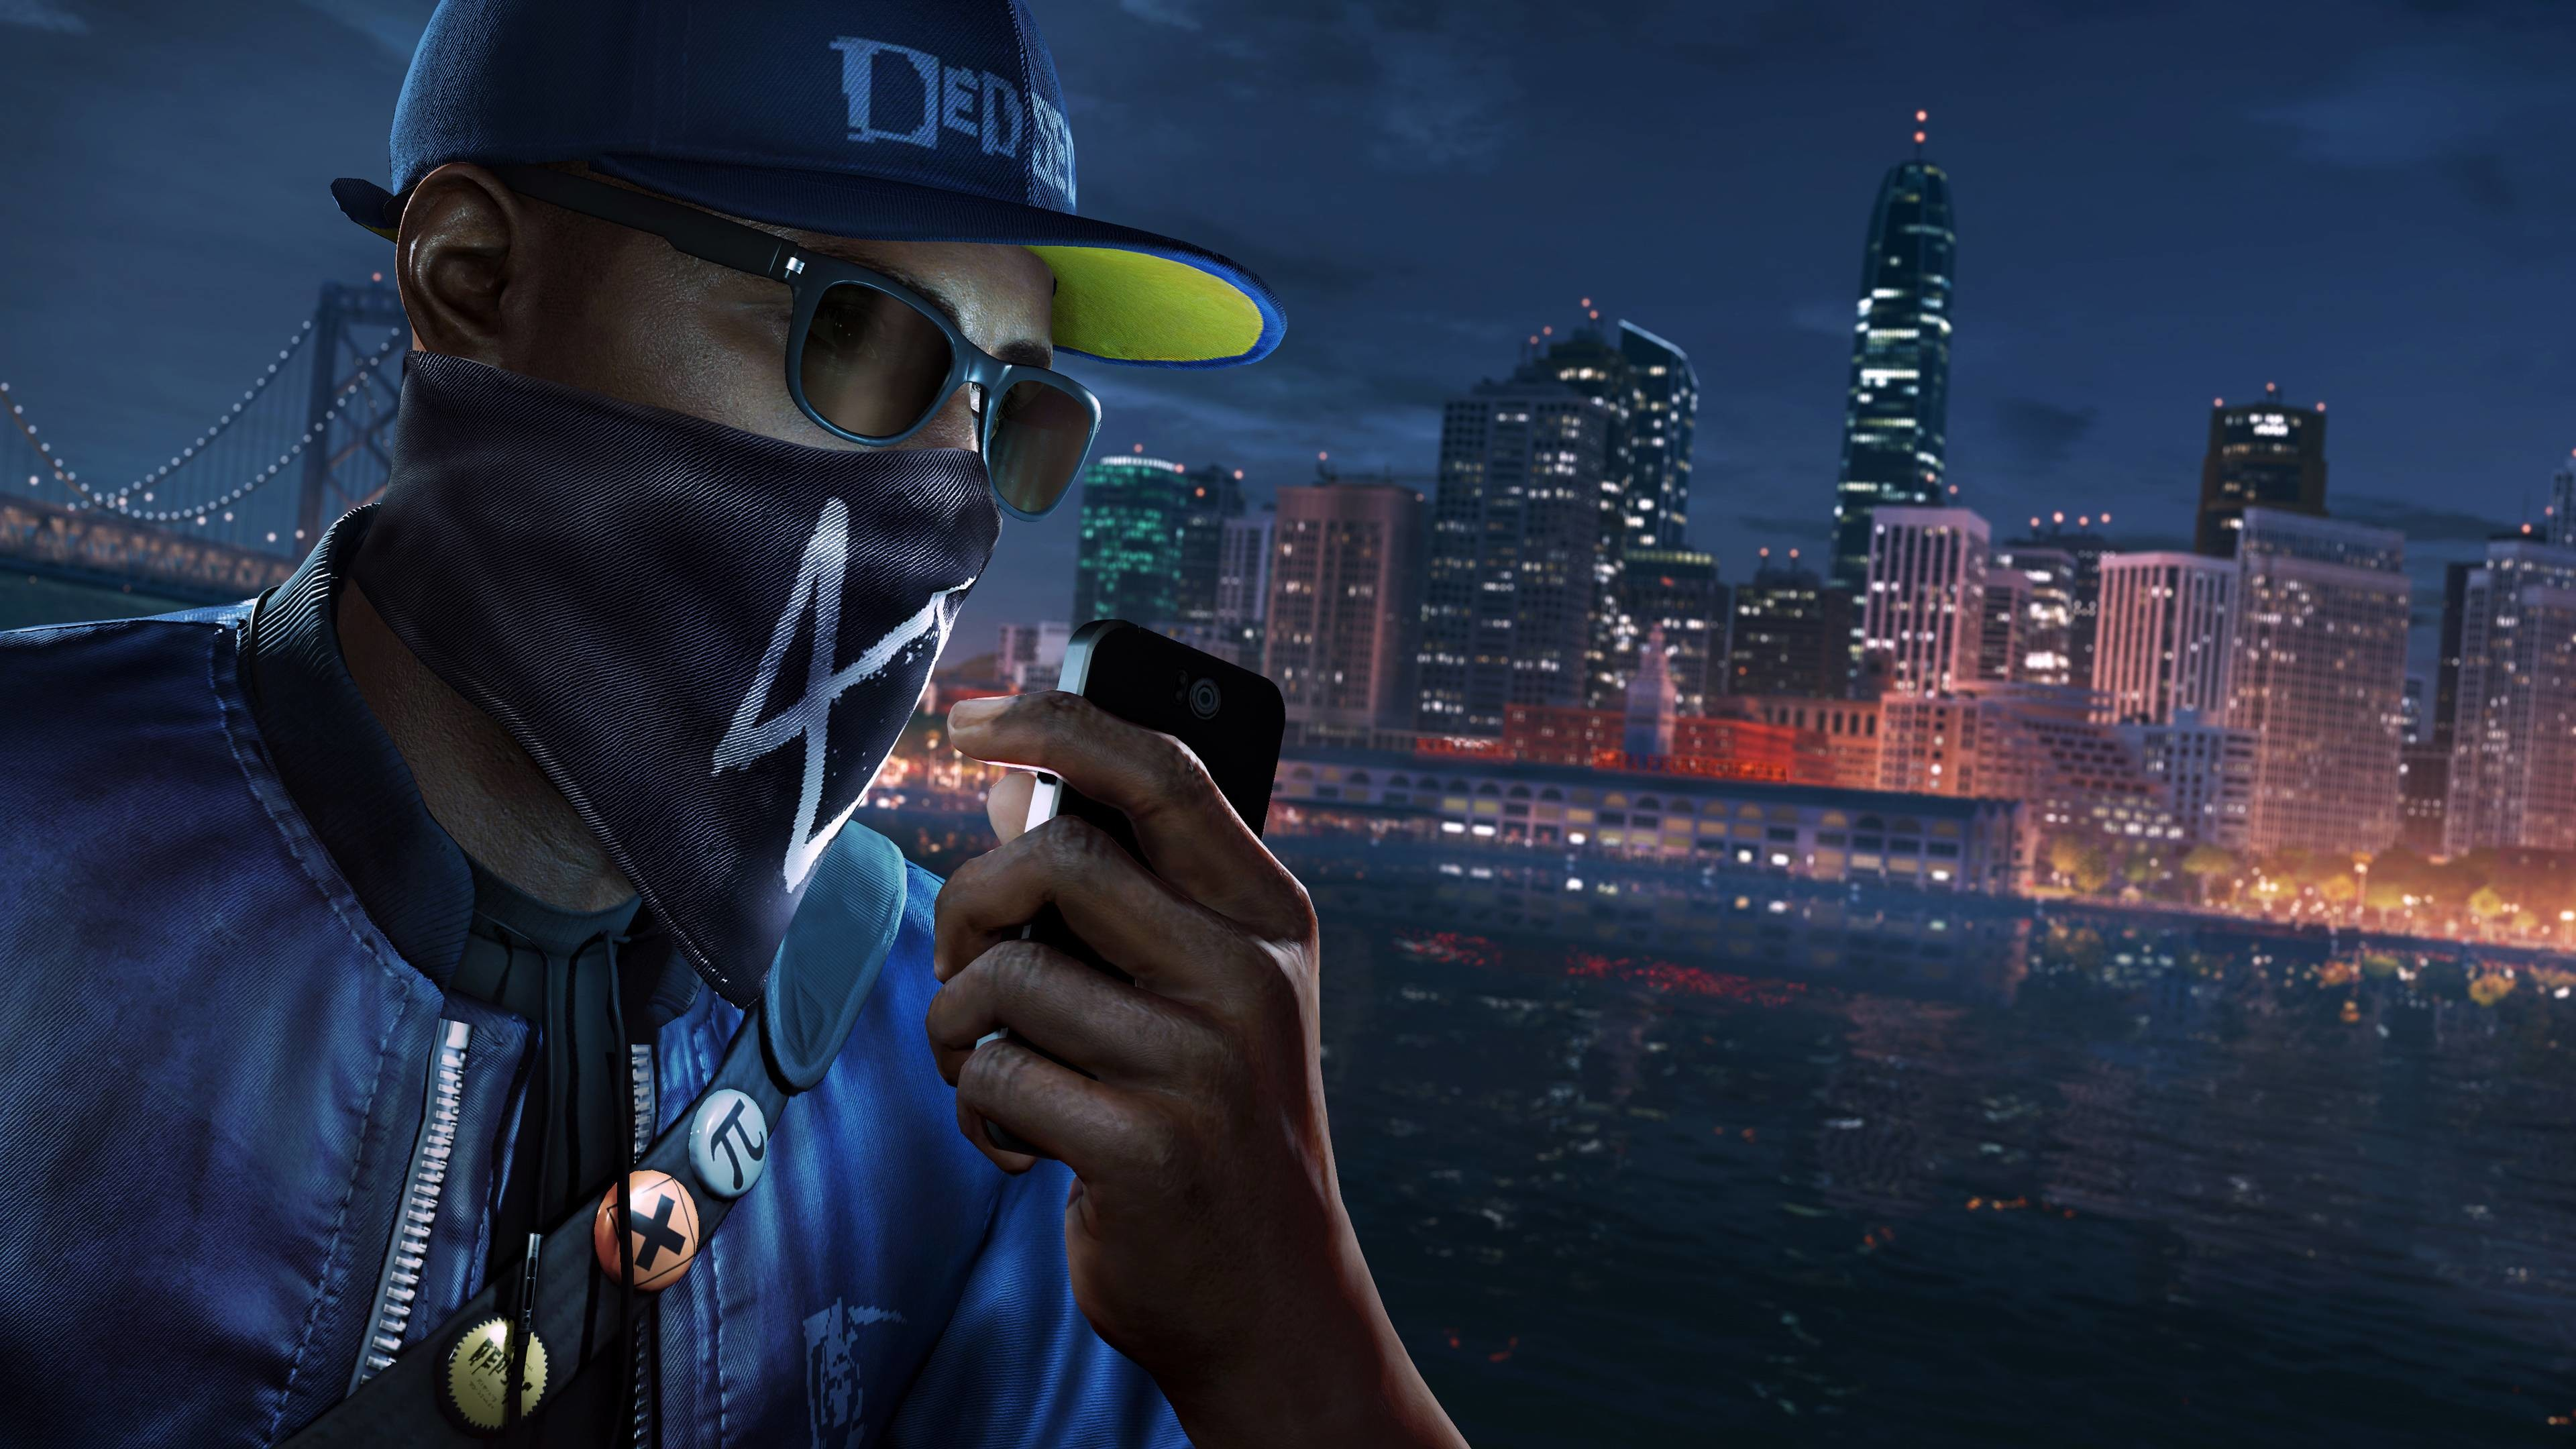 Watch Dogs 2, Marcus Holloway, PS4 Pro, 4K